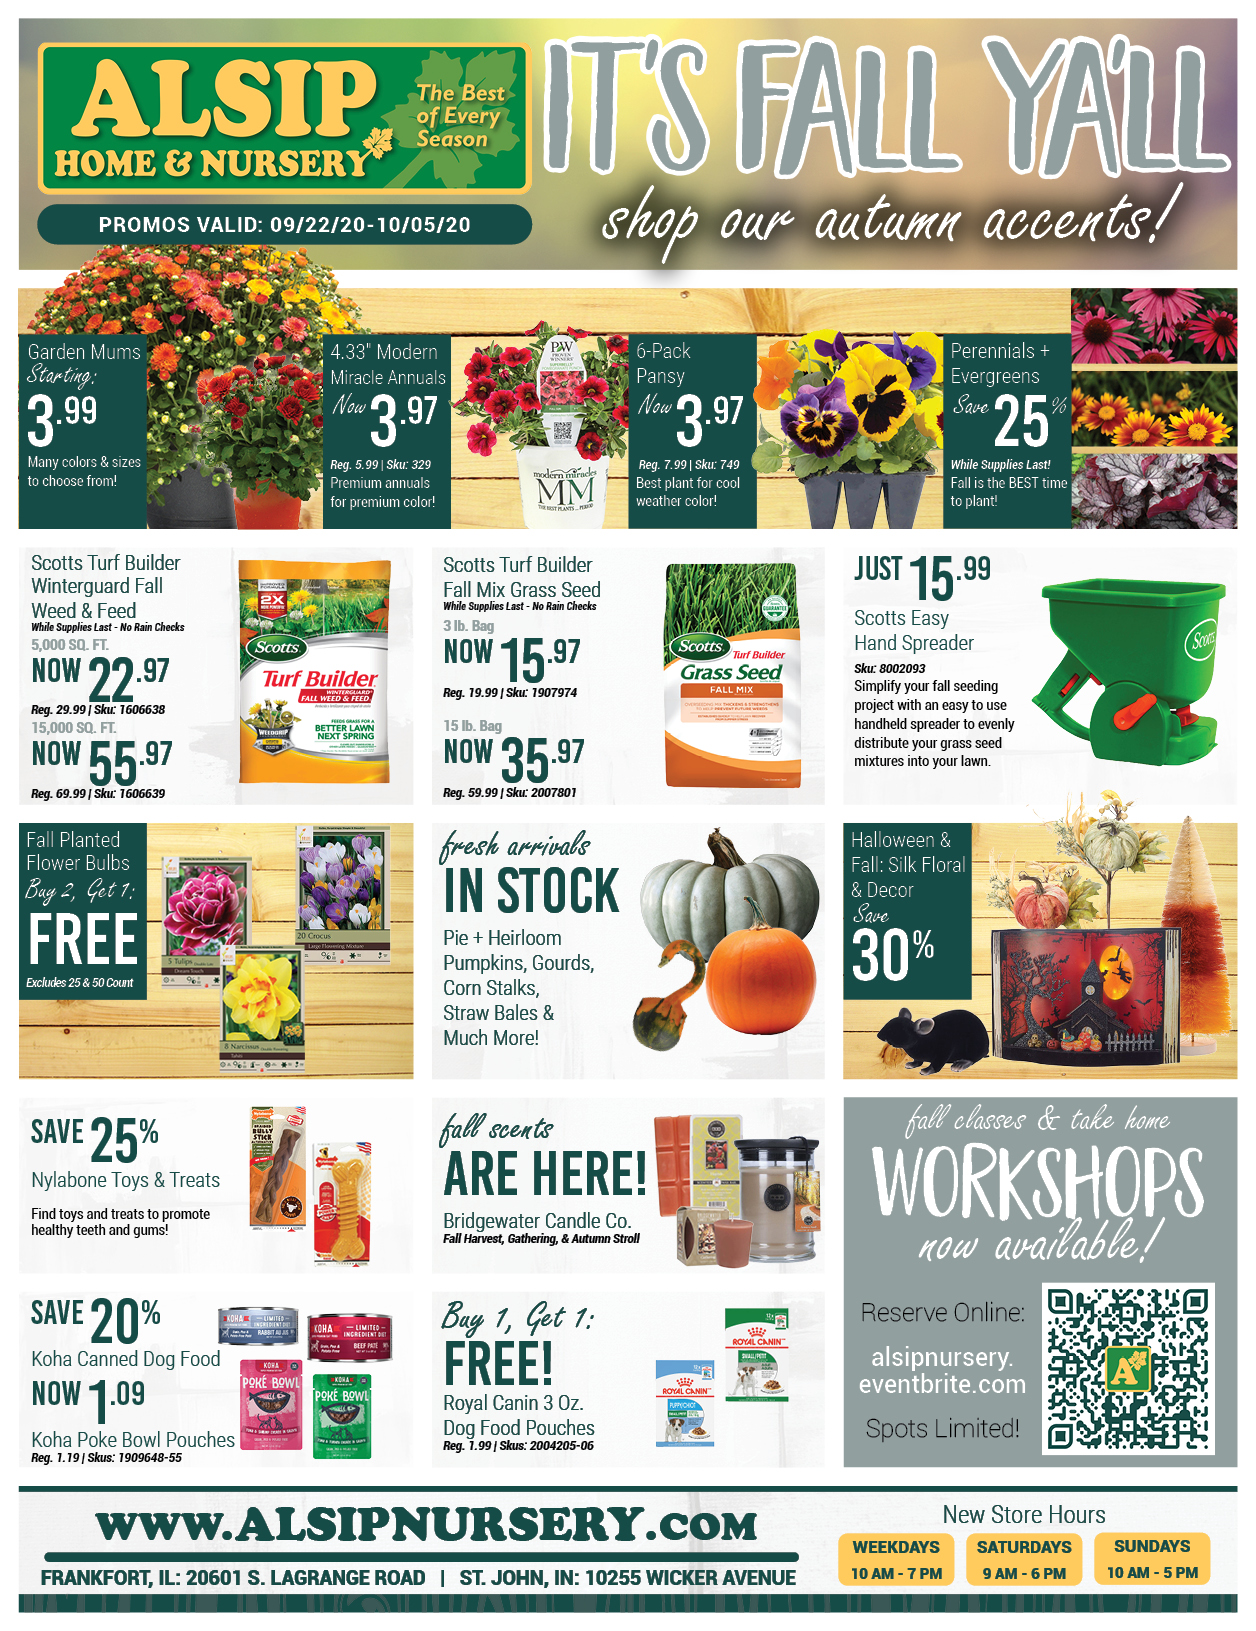 Shop Fall Decorating Finds from Alsip Home & Nursery!